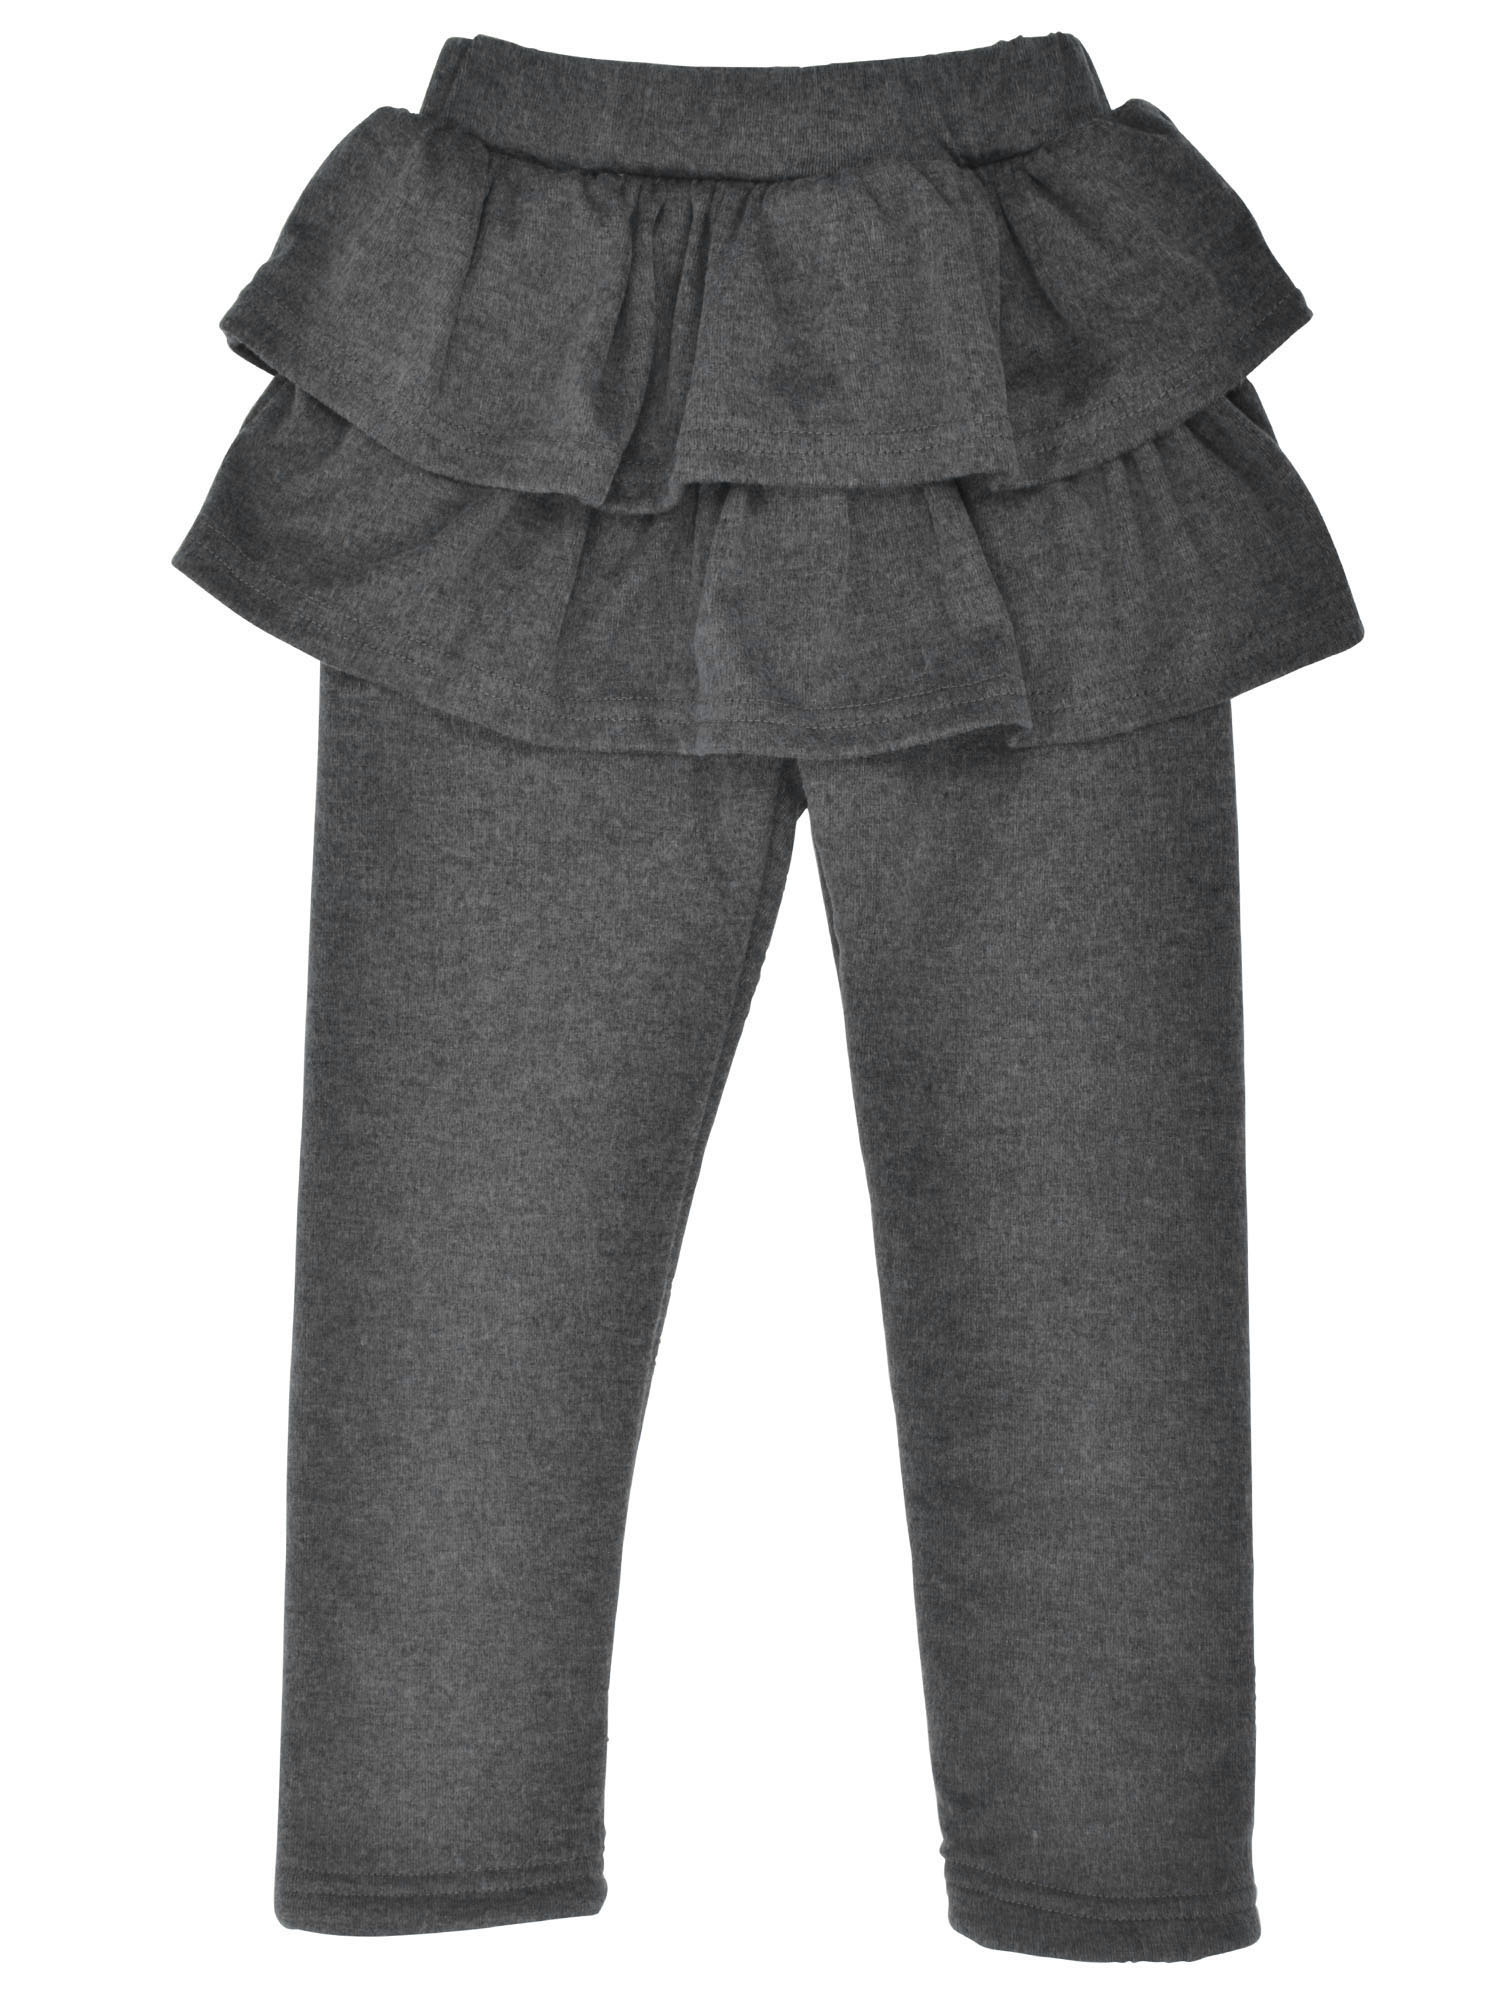 Kids' Solid Footless Tutu Legging with Ruffled Skirt Culottes,D.Grey,4